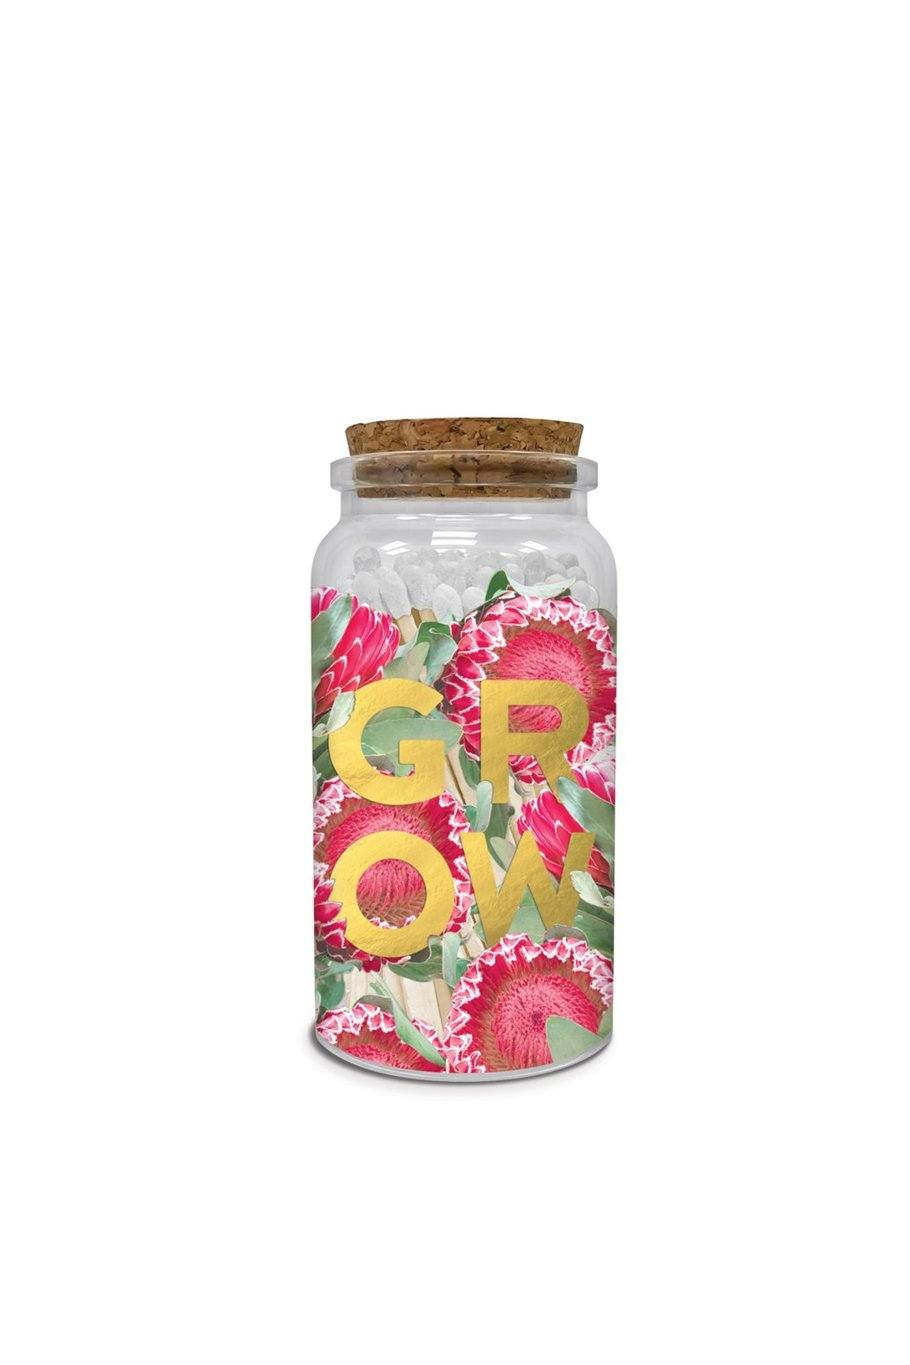 Grow matches Printed Glass Jar - Shore